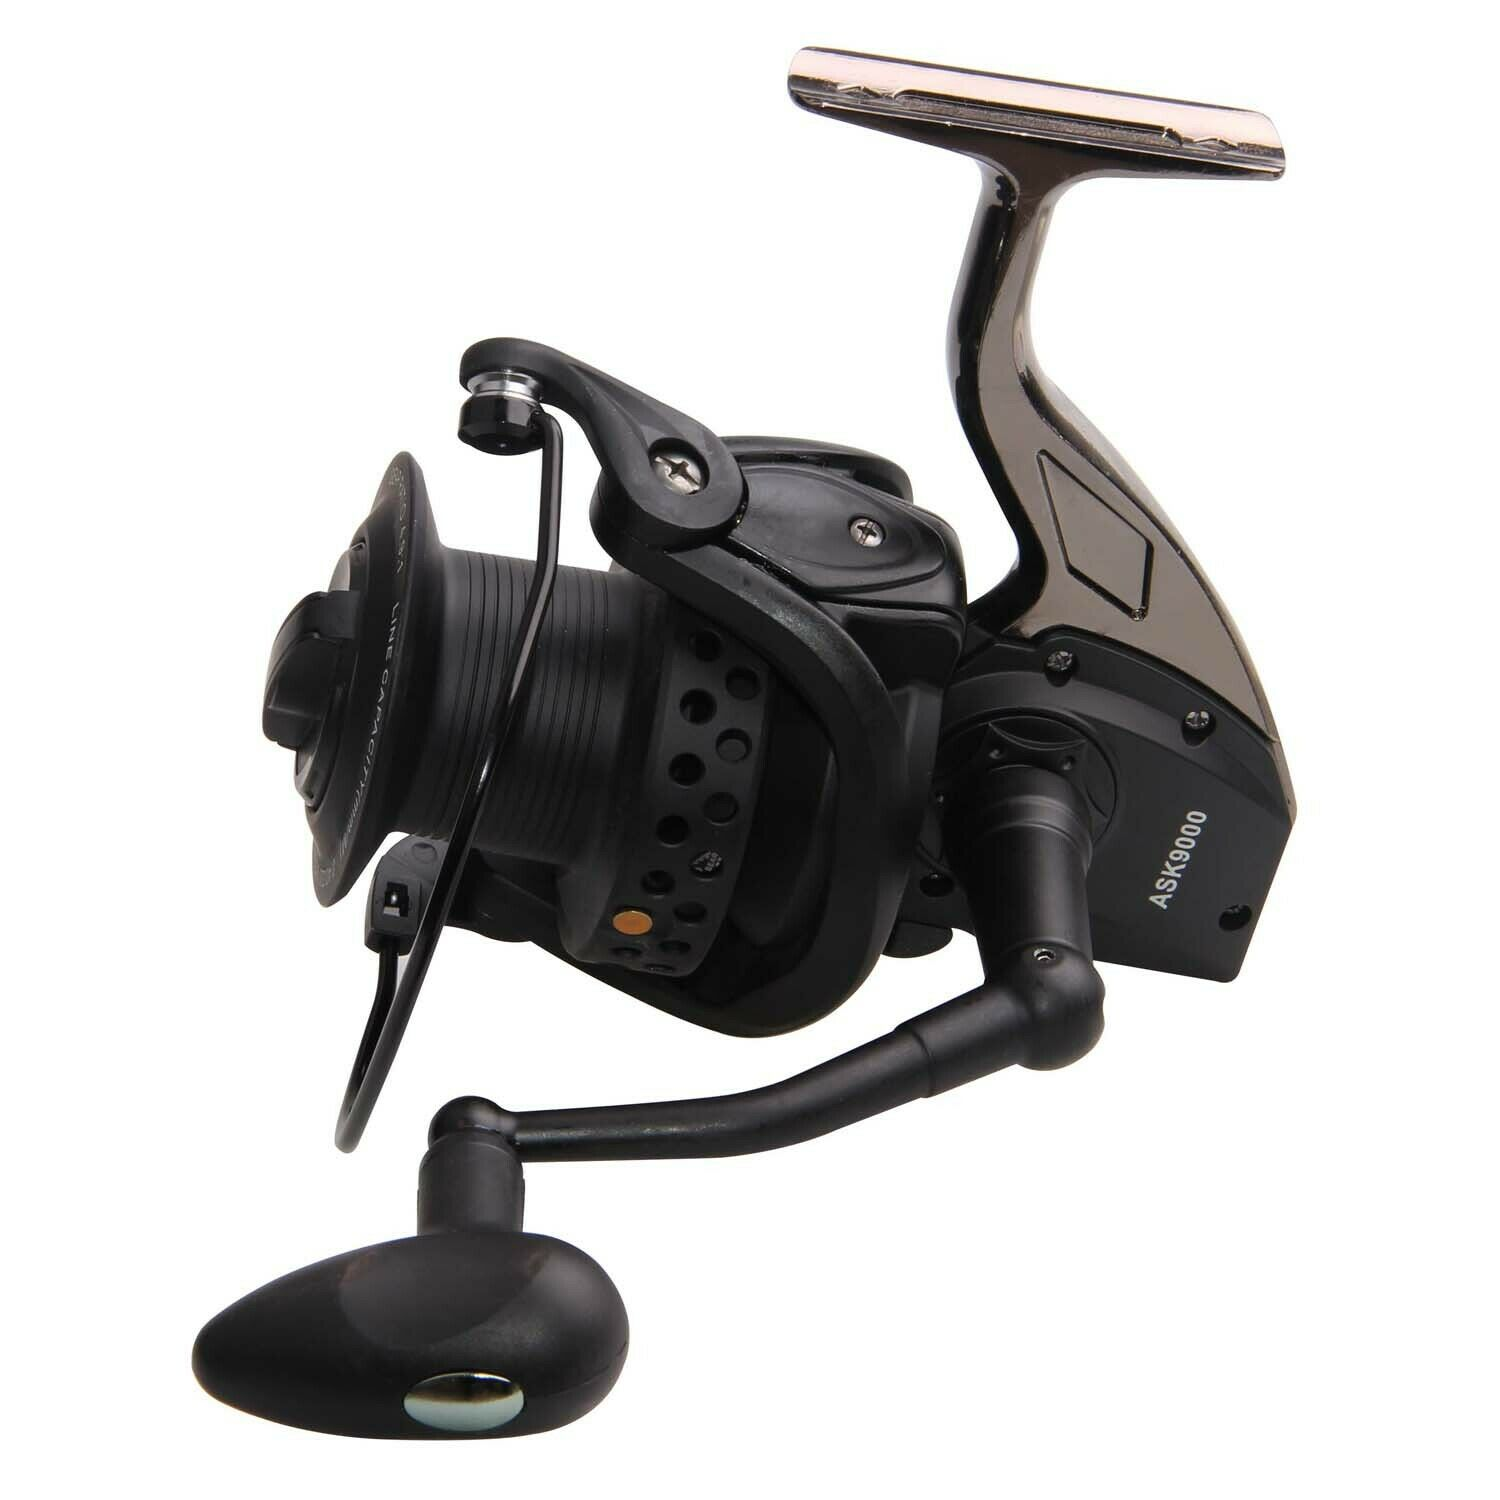 Full Metal High  Performance Fishing Reels Saltwater Spinning Reel Left Right  discounts and more